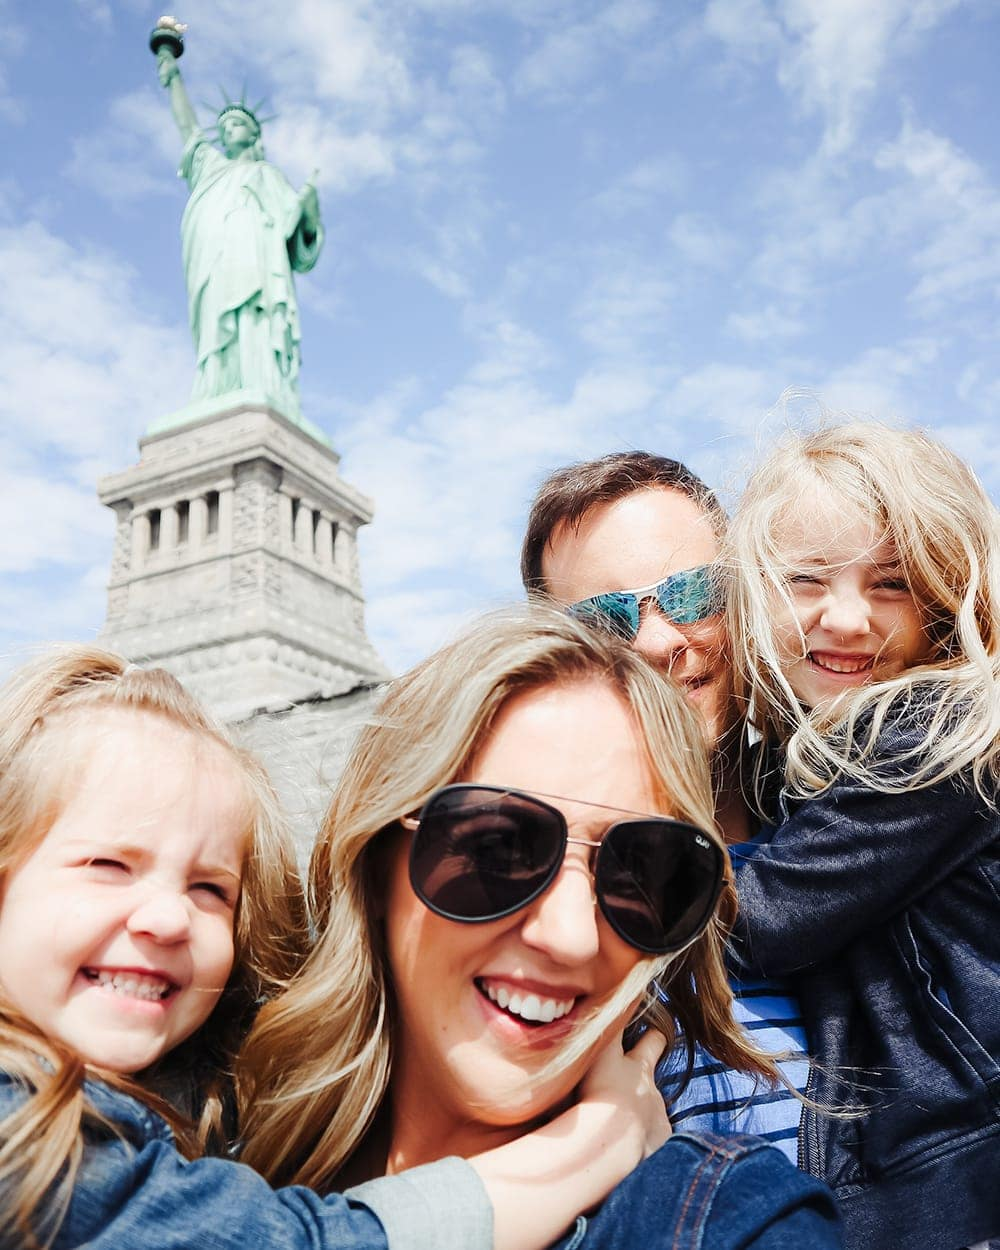 Statue of Liberty Family Photo - New York City Family Trip guide by mommy blogger Meg O. on the Go